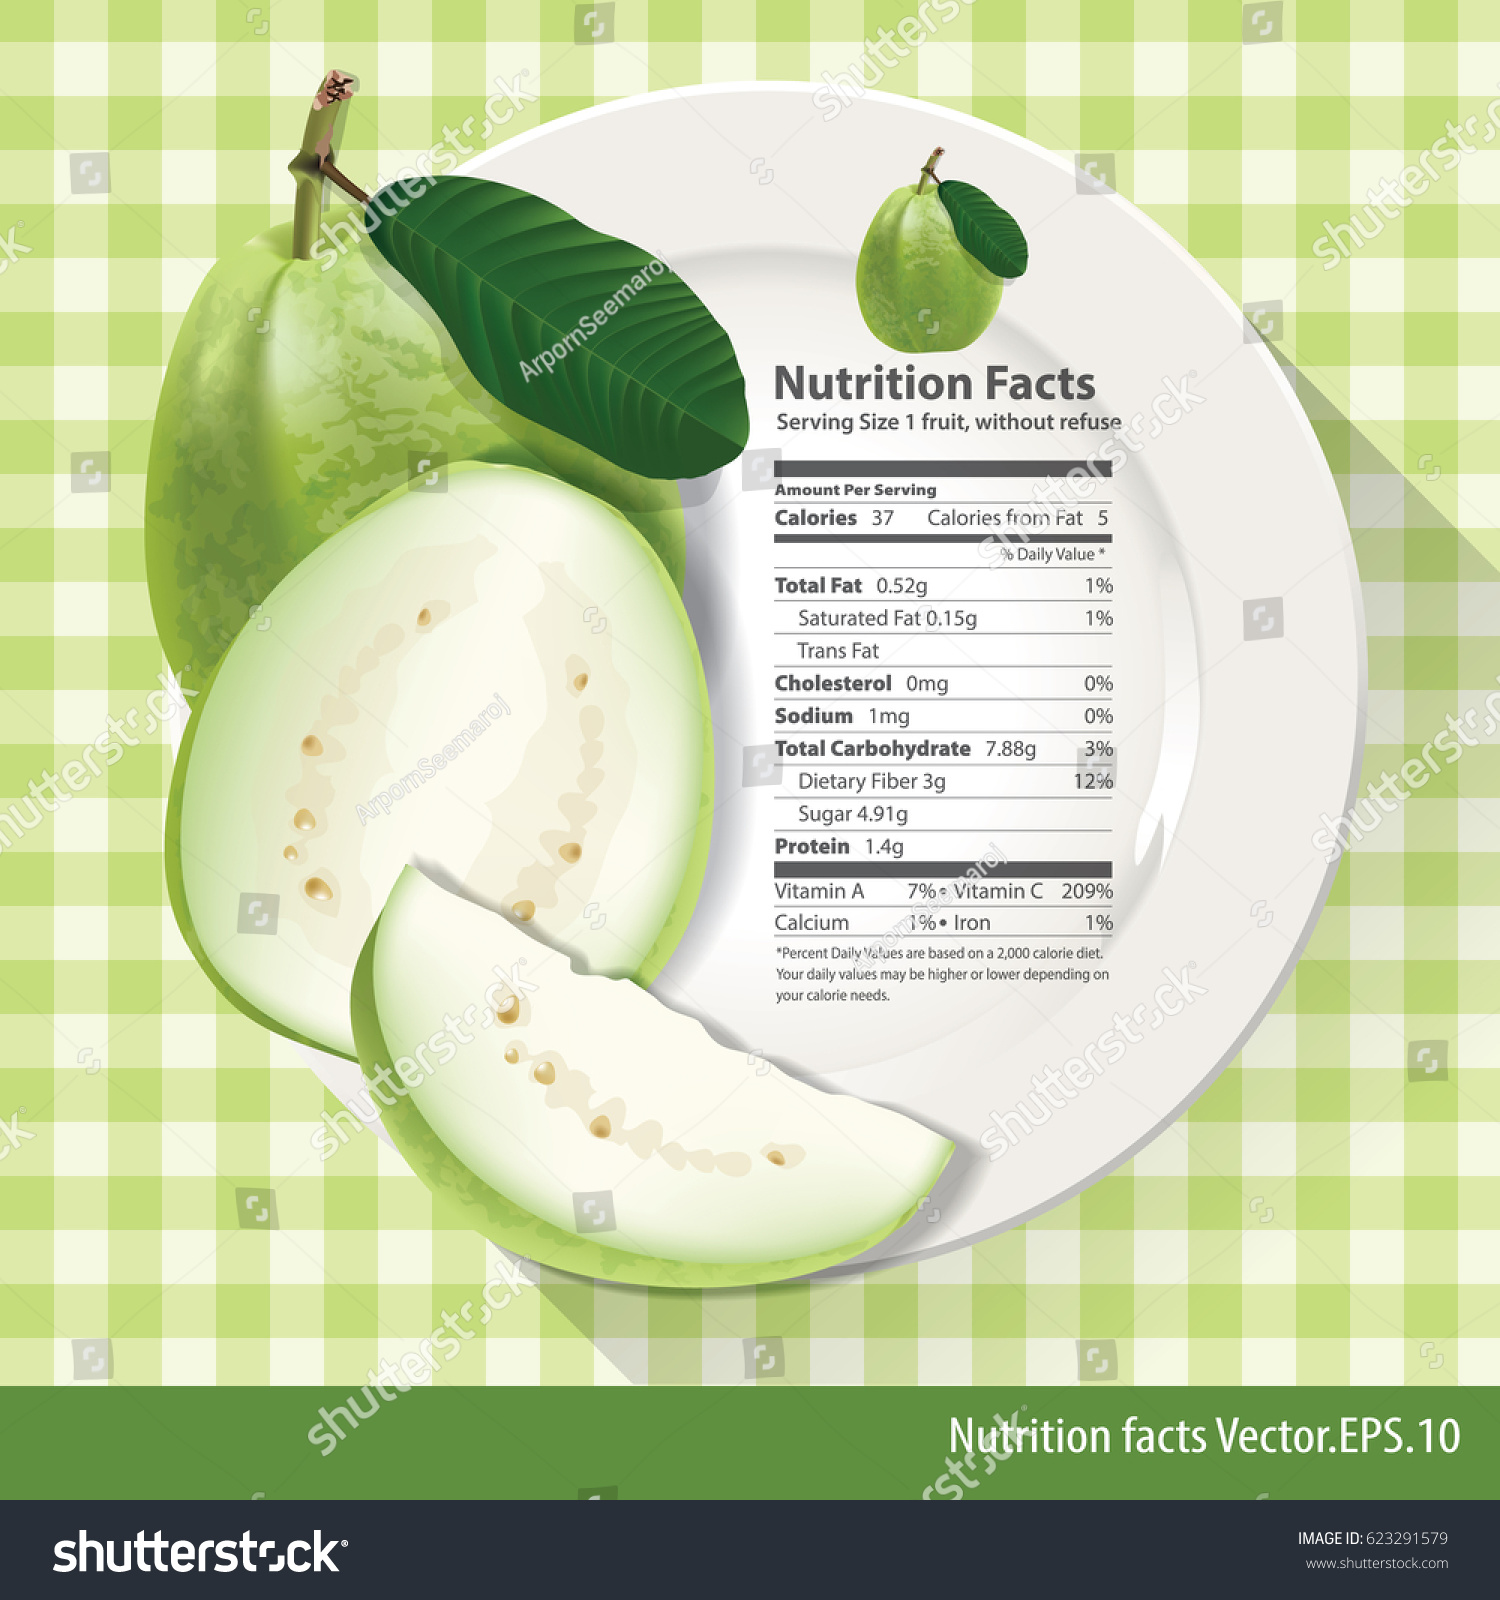 Vector Nutrition Facts One Guava On Stock Vector Royalty Free 623291579